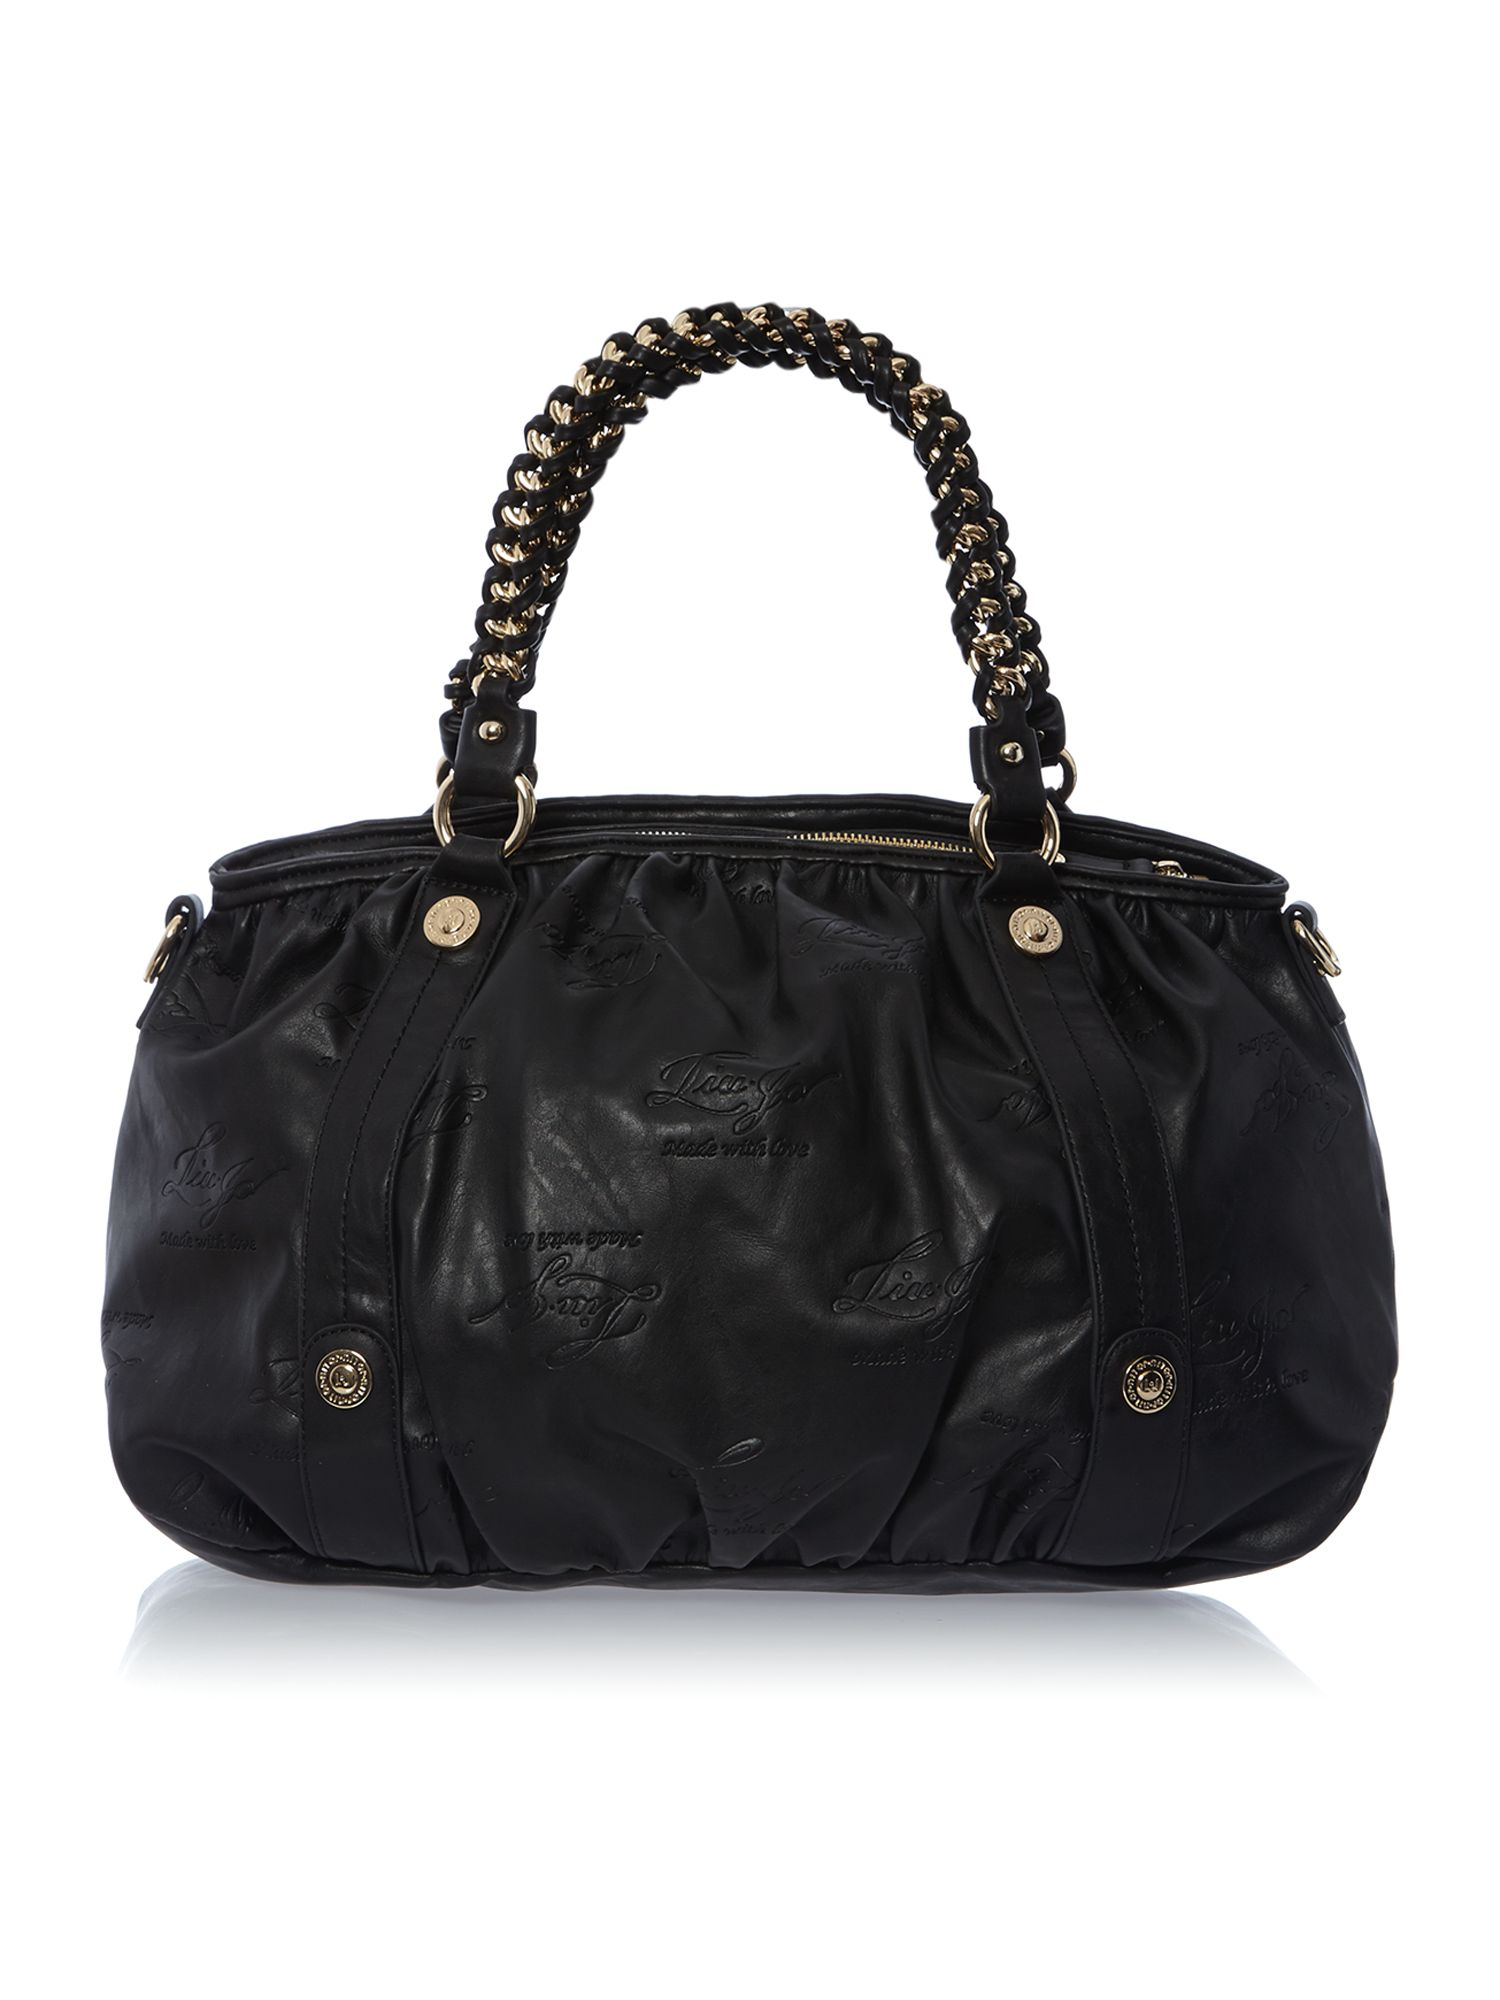 Kate black large chain tote bag